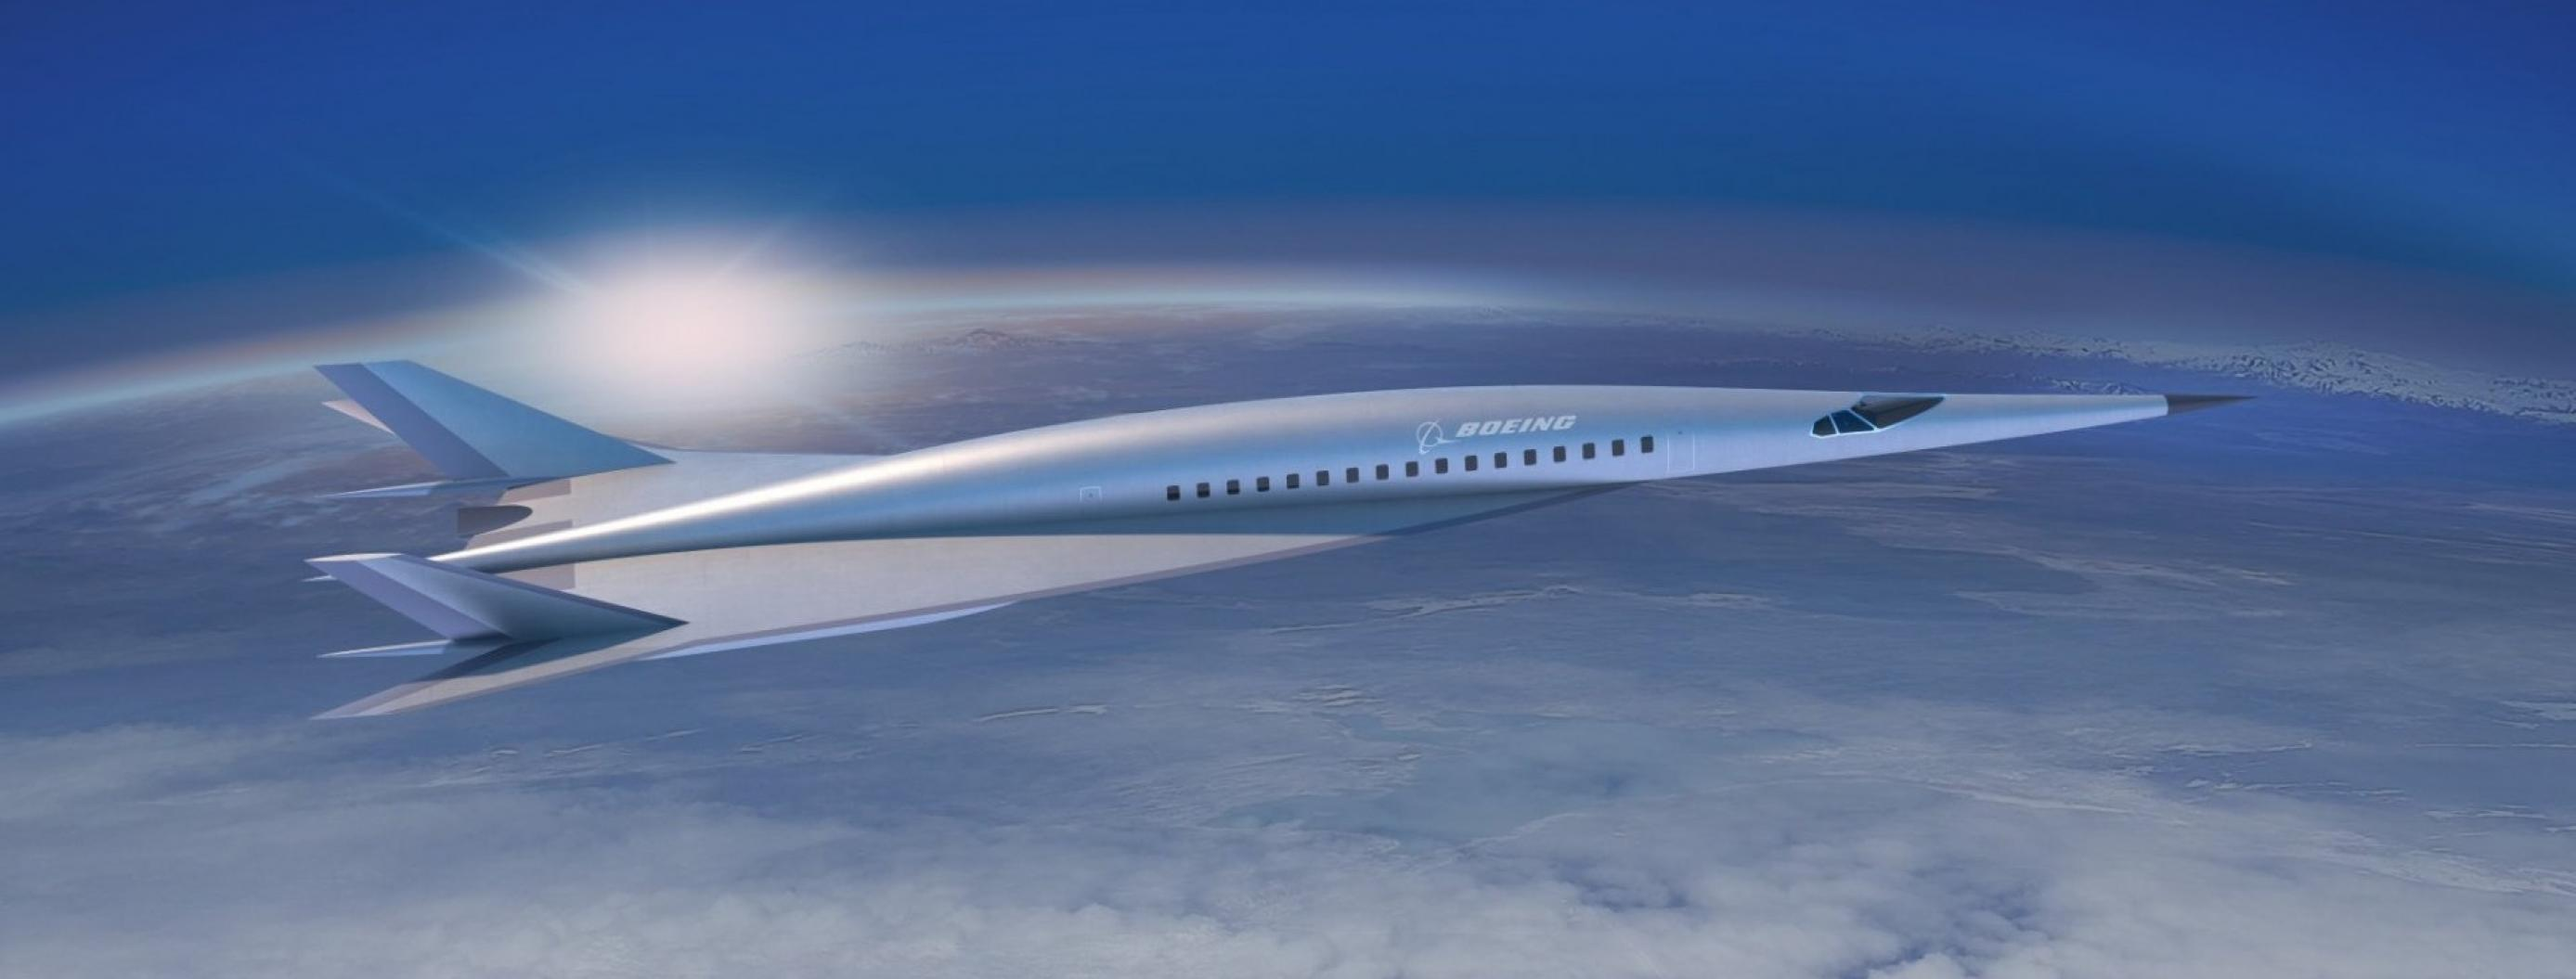 5 Things You Will See in Planes of the Future